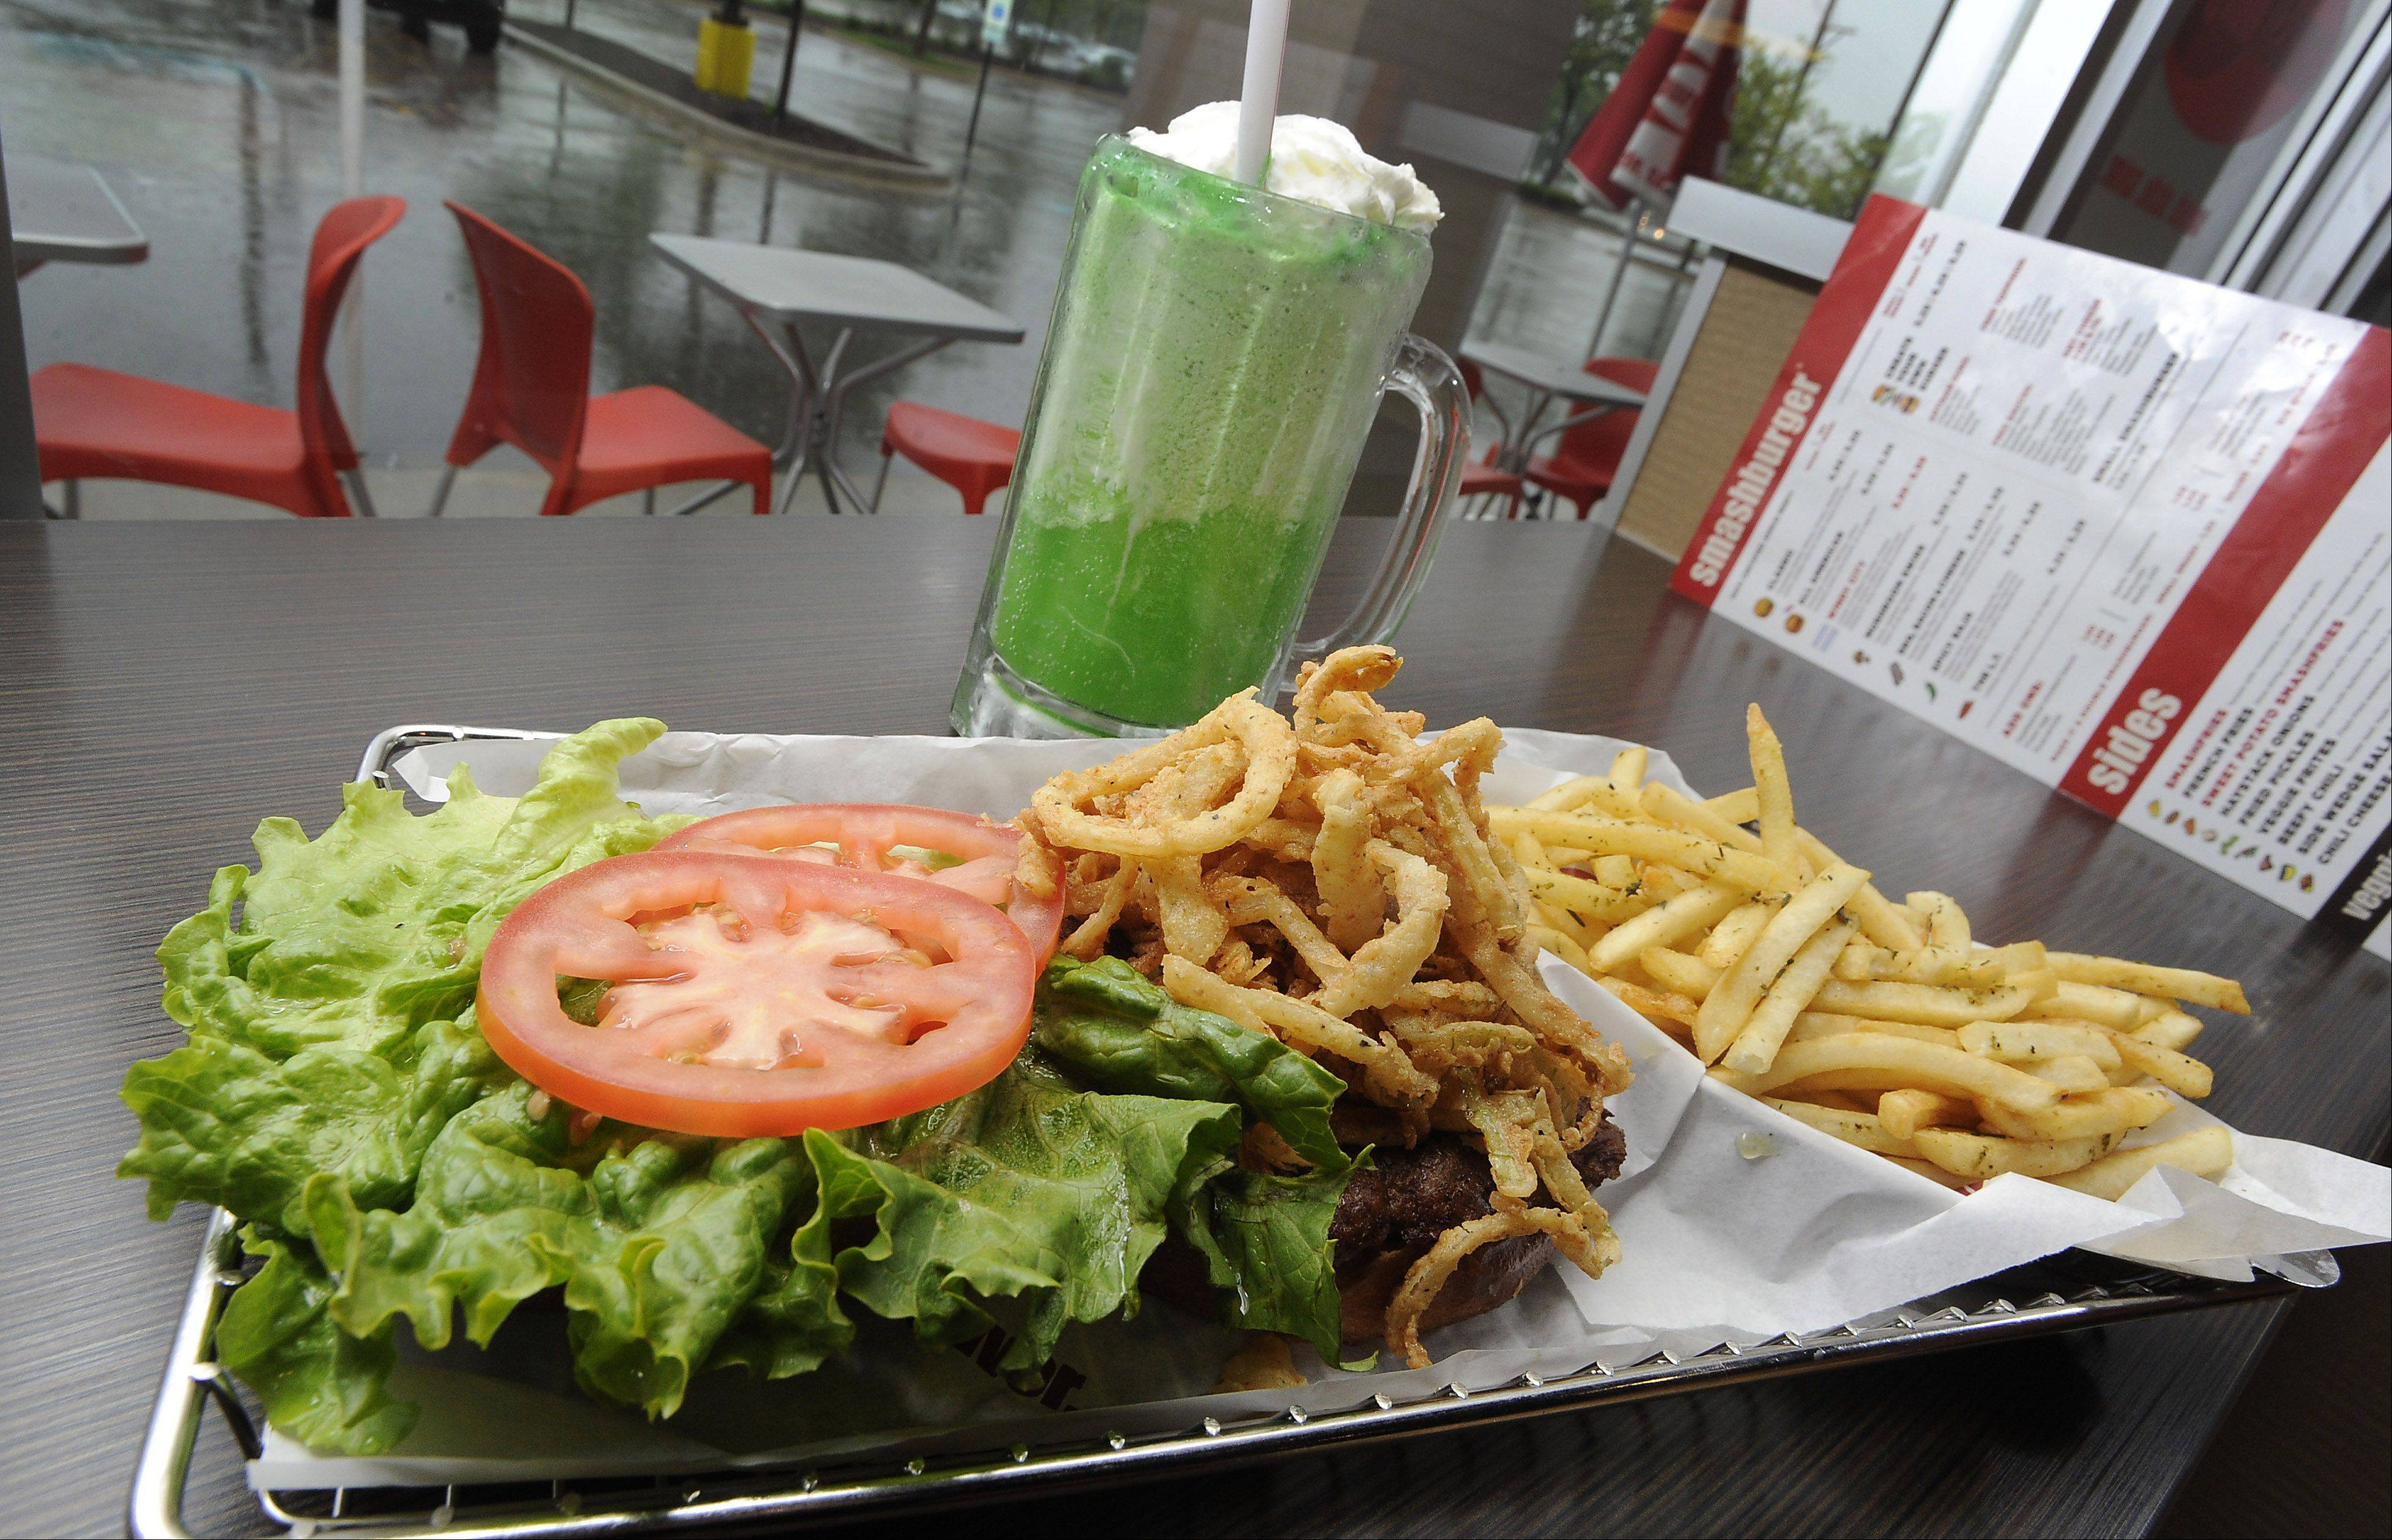 The Windy City Burger is just one option at the newly opened Smashburger in Wheaton.